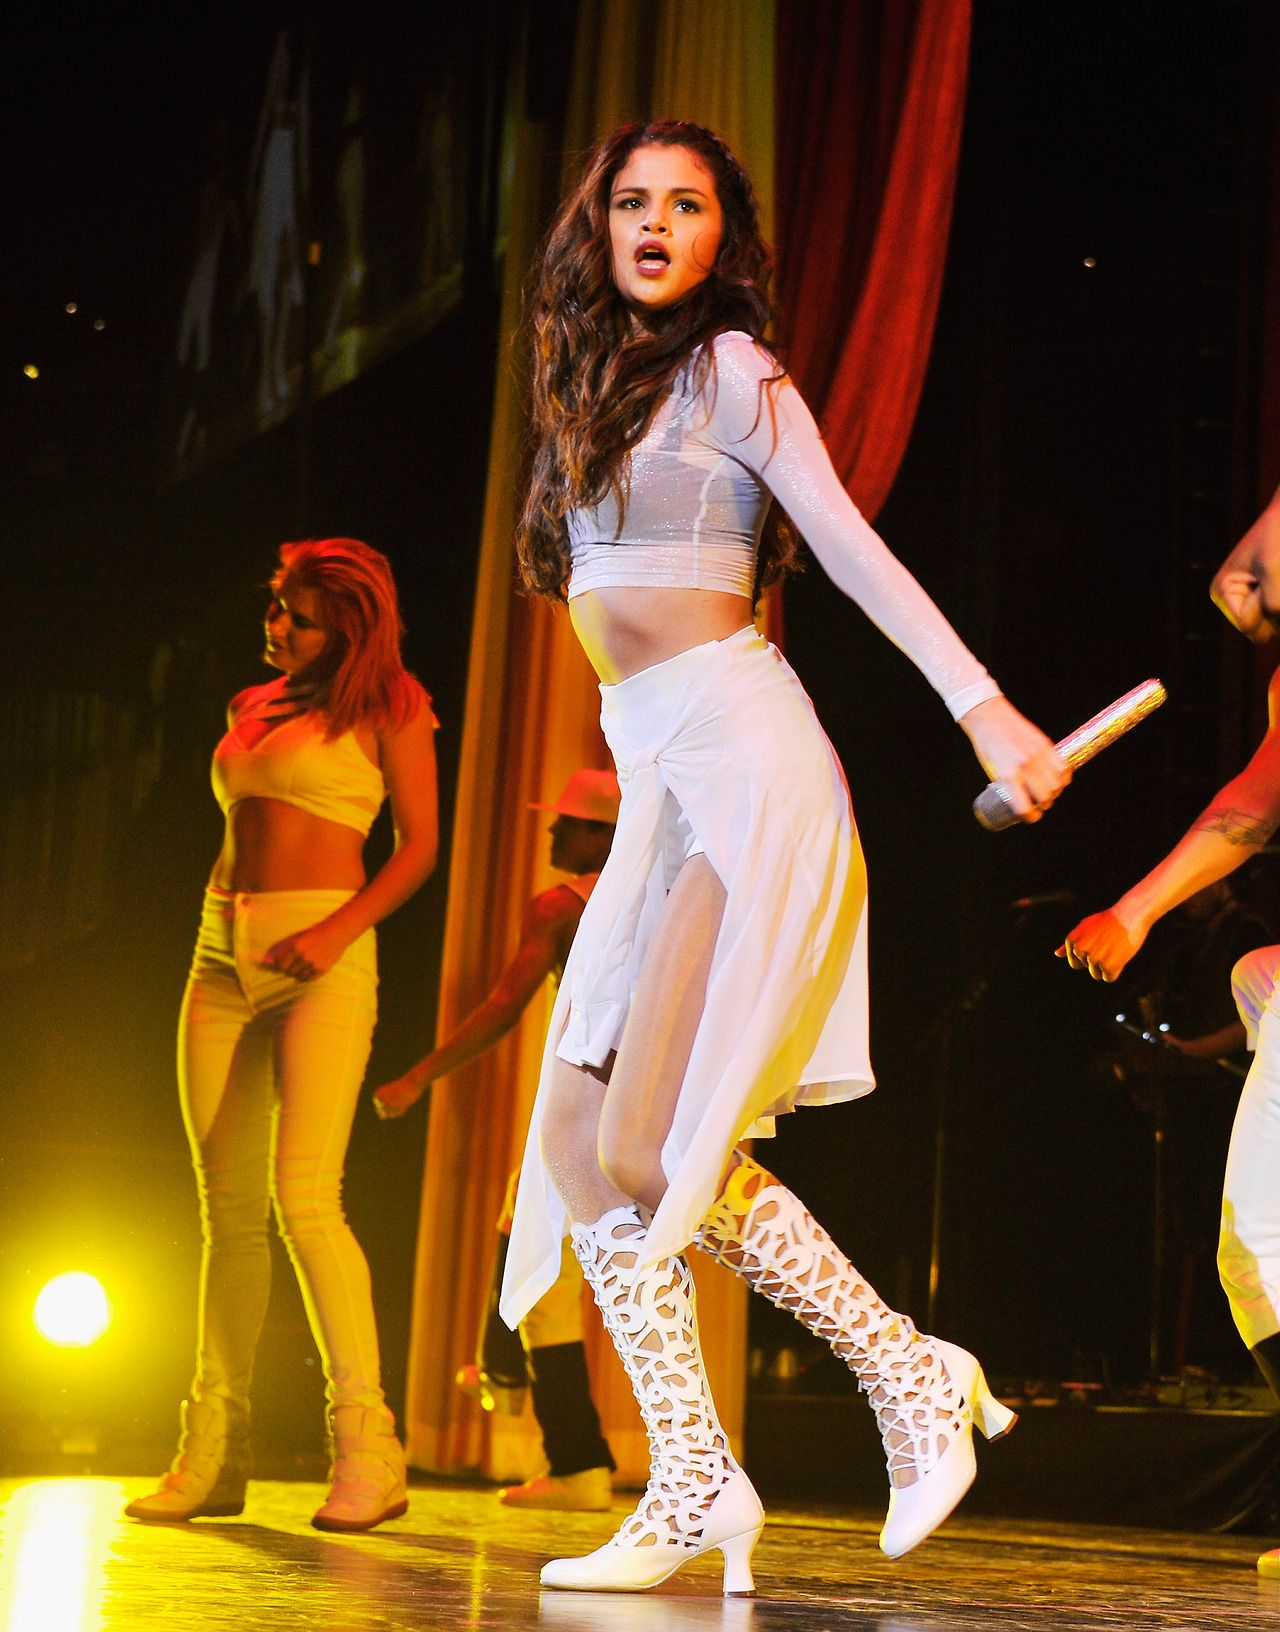 Sexy selena gomez dancing and shake her perfect ass 8